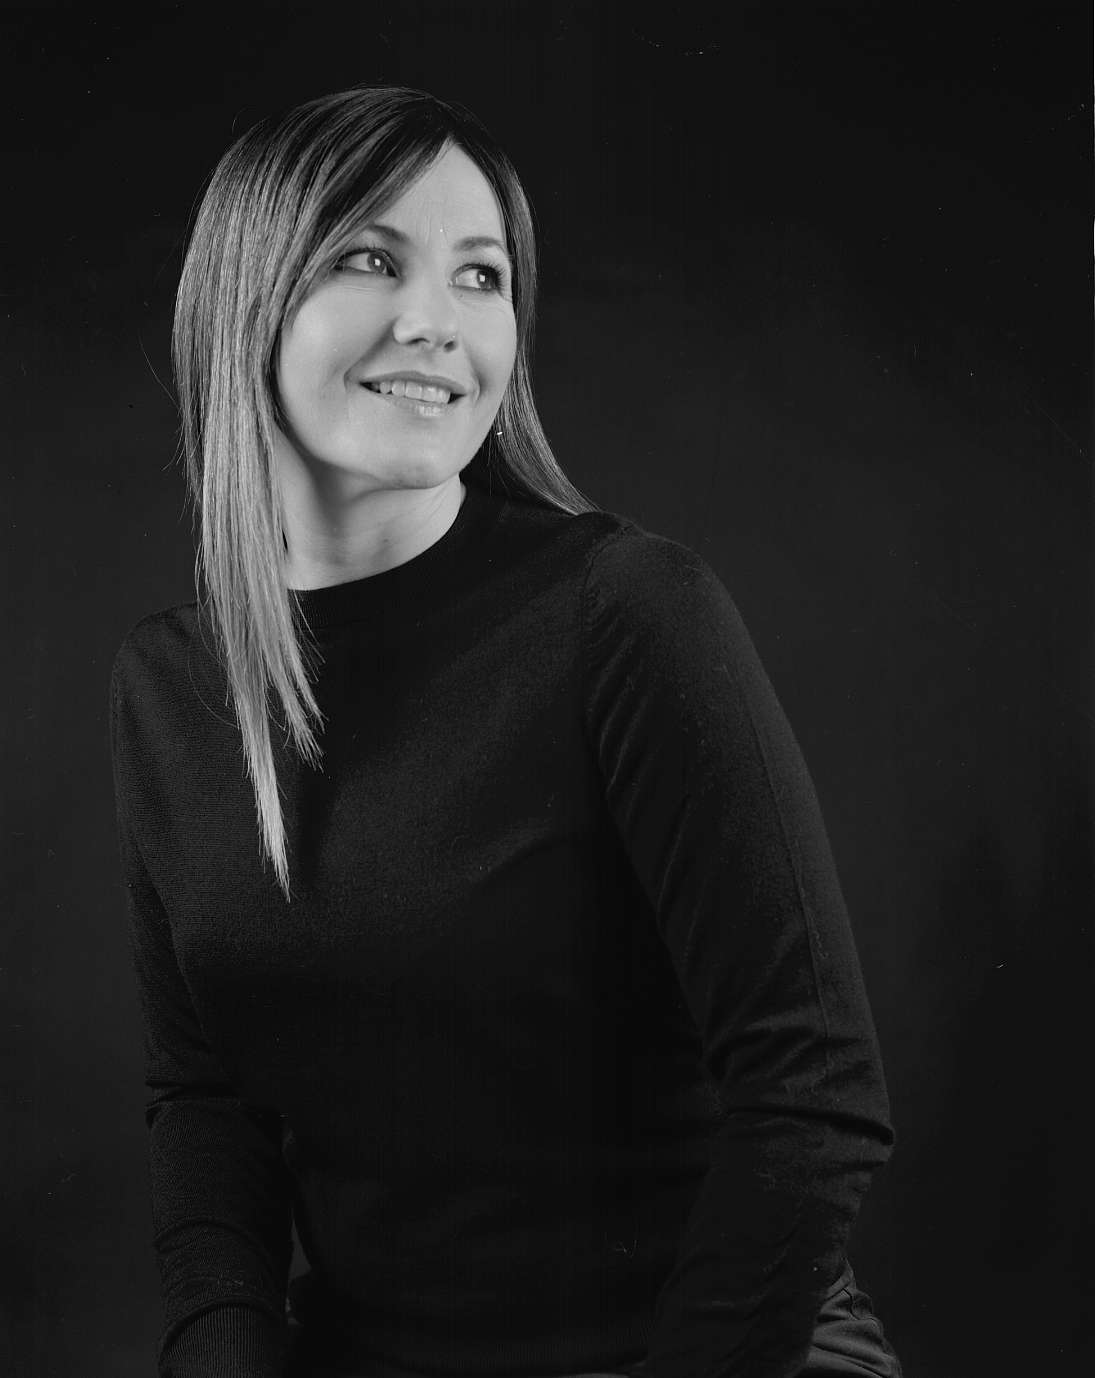 CHIARA CALIGARA  is Co-fouder and Managing Partner at Brite.  She's currently living in Warsaw, Poland.